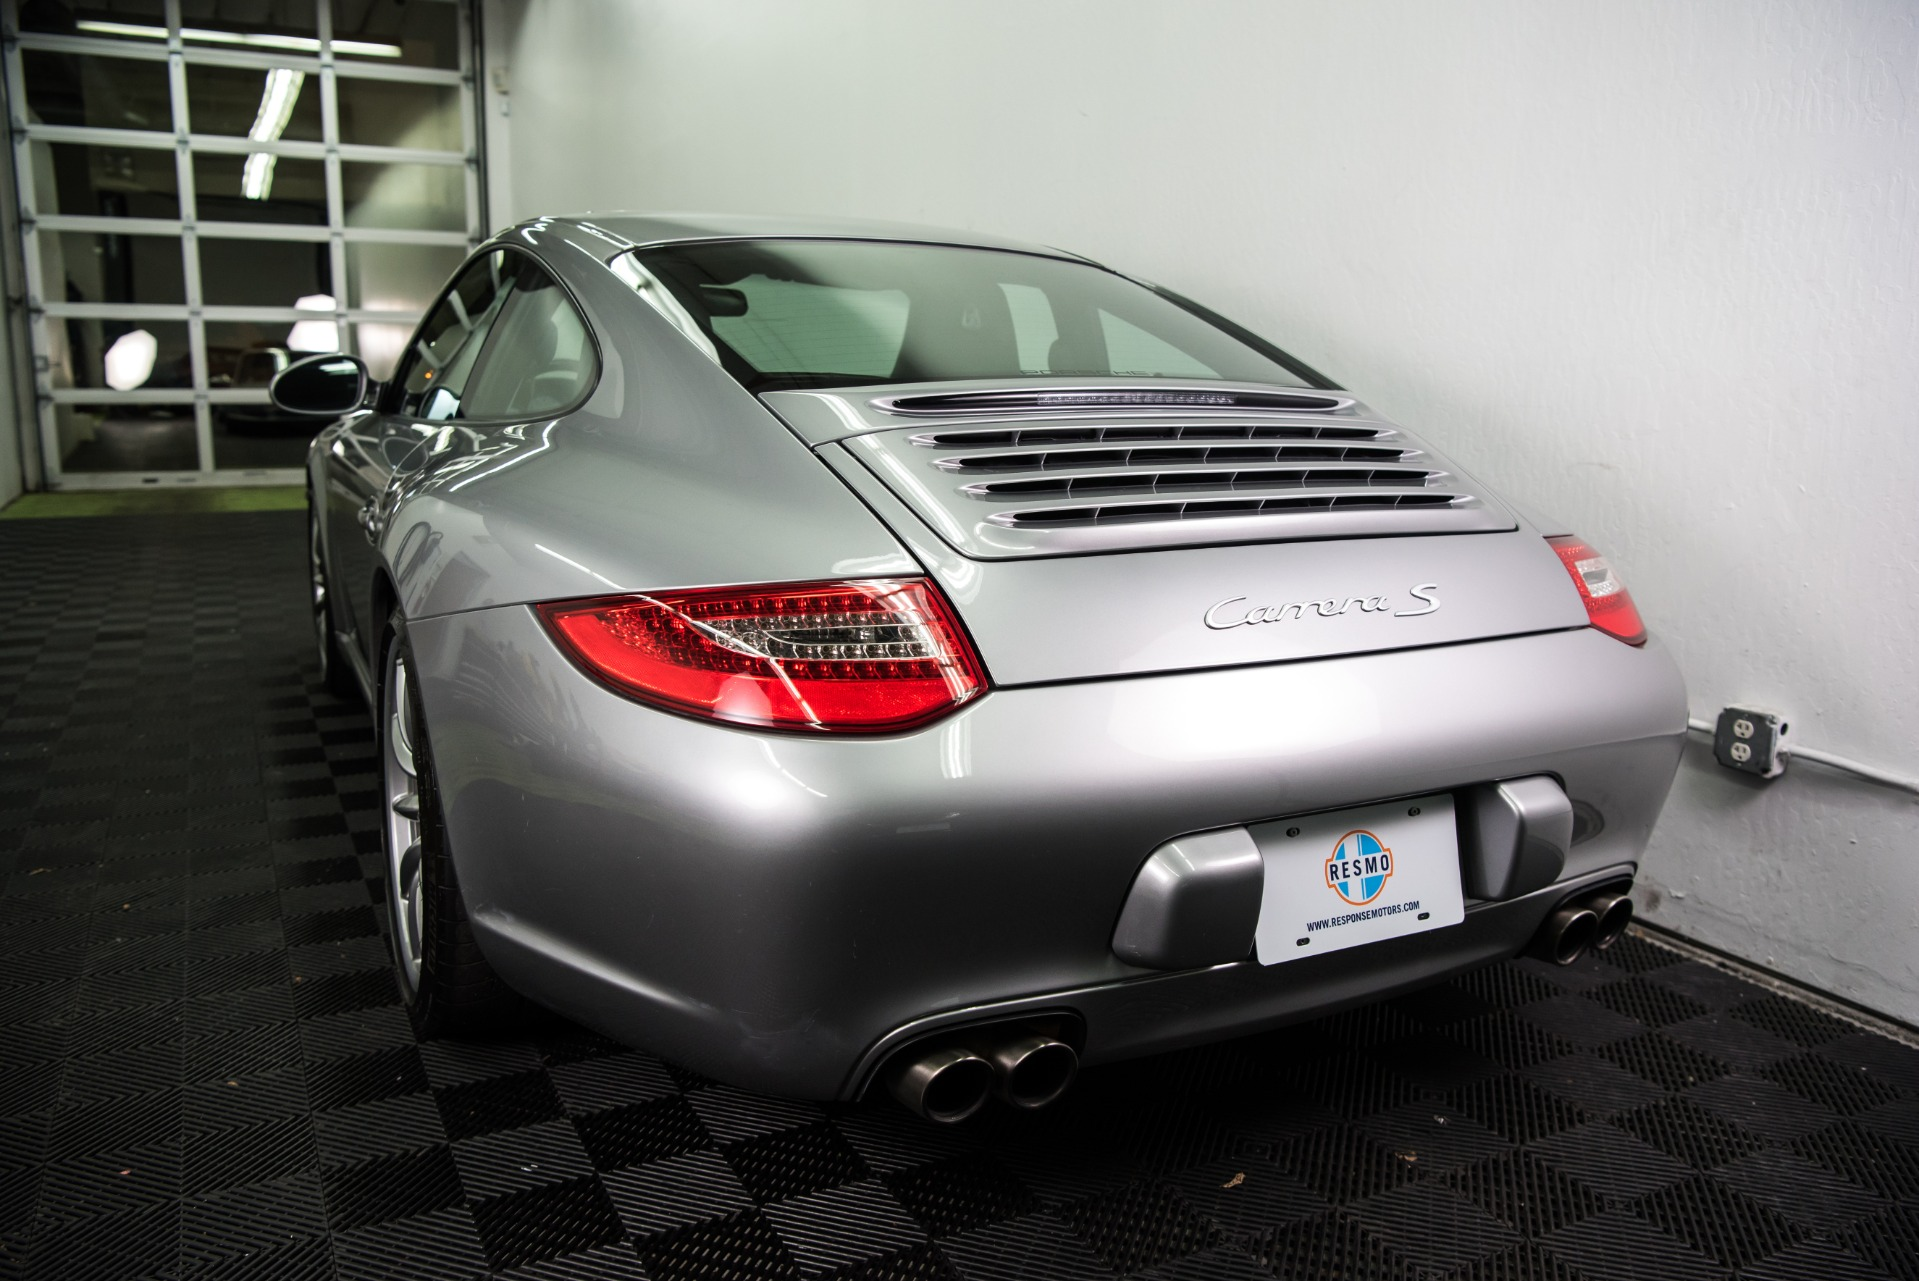 Used 2010 Porsche 911 Carrera S Used 2010 Porsche 911 Carrera S for sale Sold at Response Motors in Mountain View CA 7